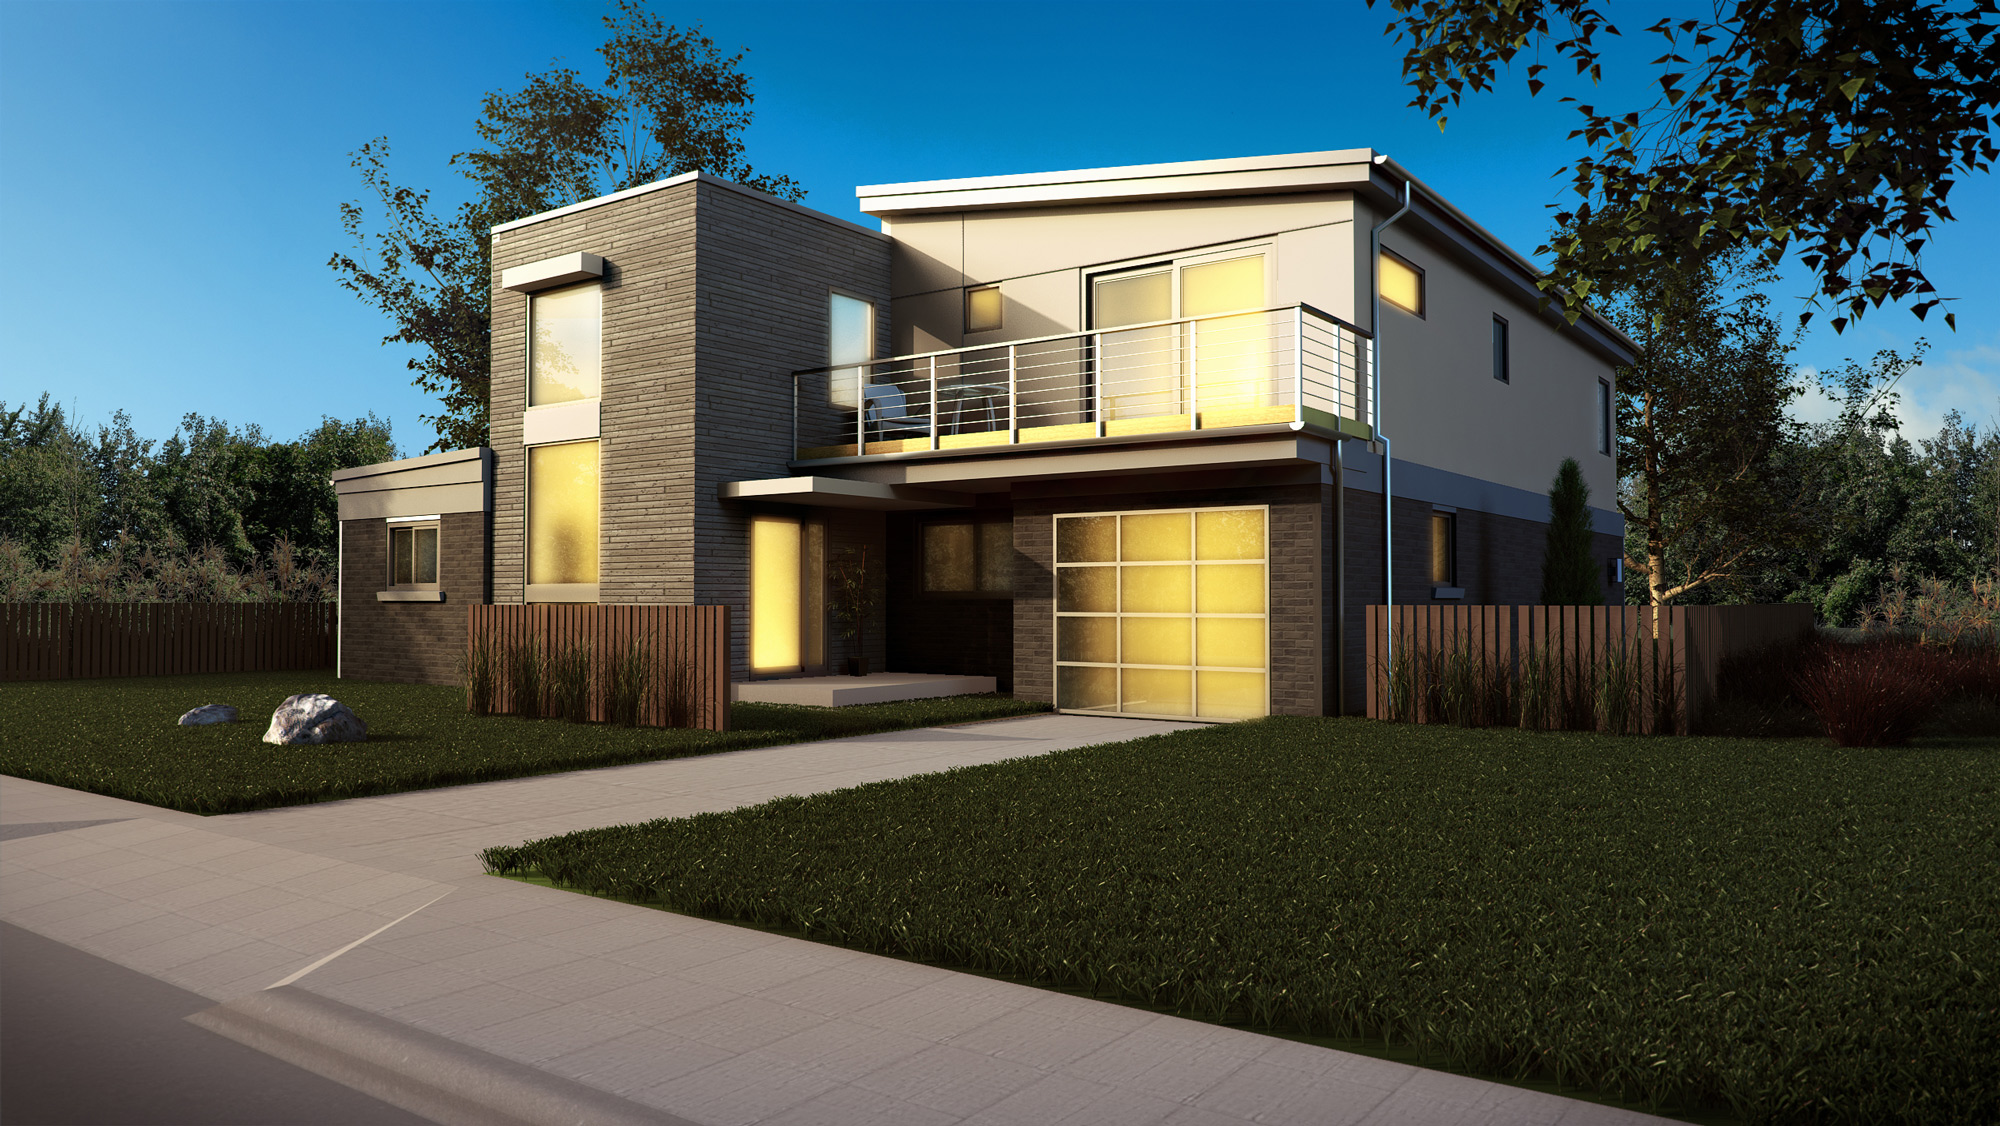 Exterior renderings by american render top quality 3d for Exterior 3d rendering